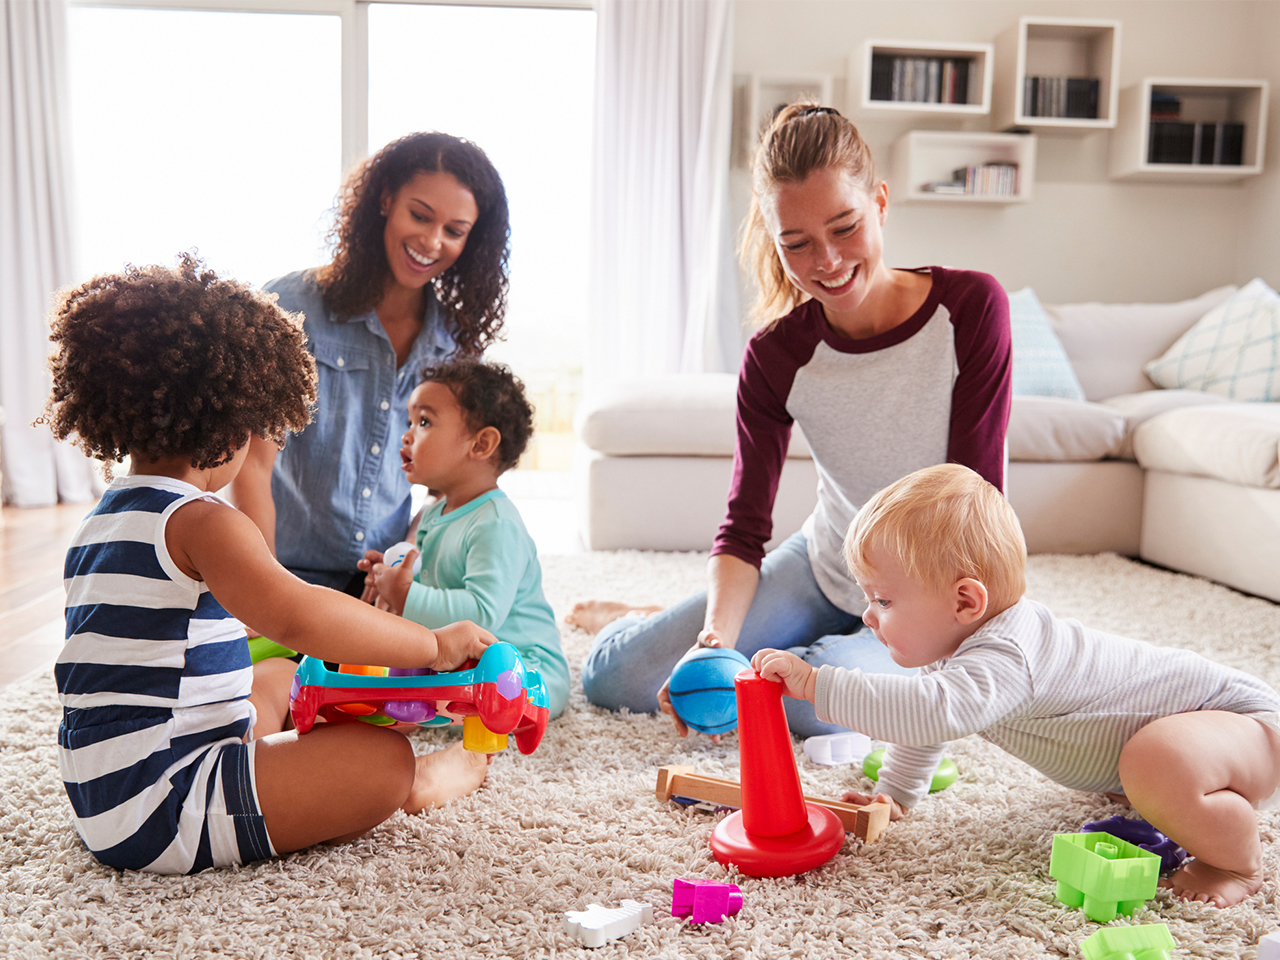 When did parenting a baby become so competitive?